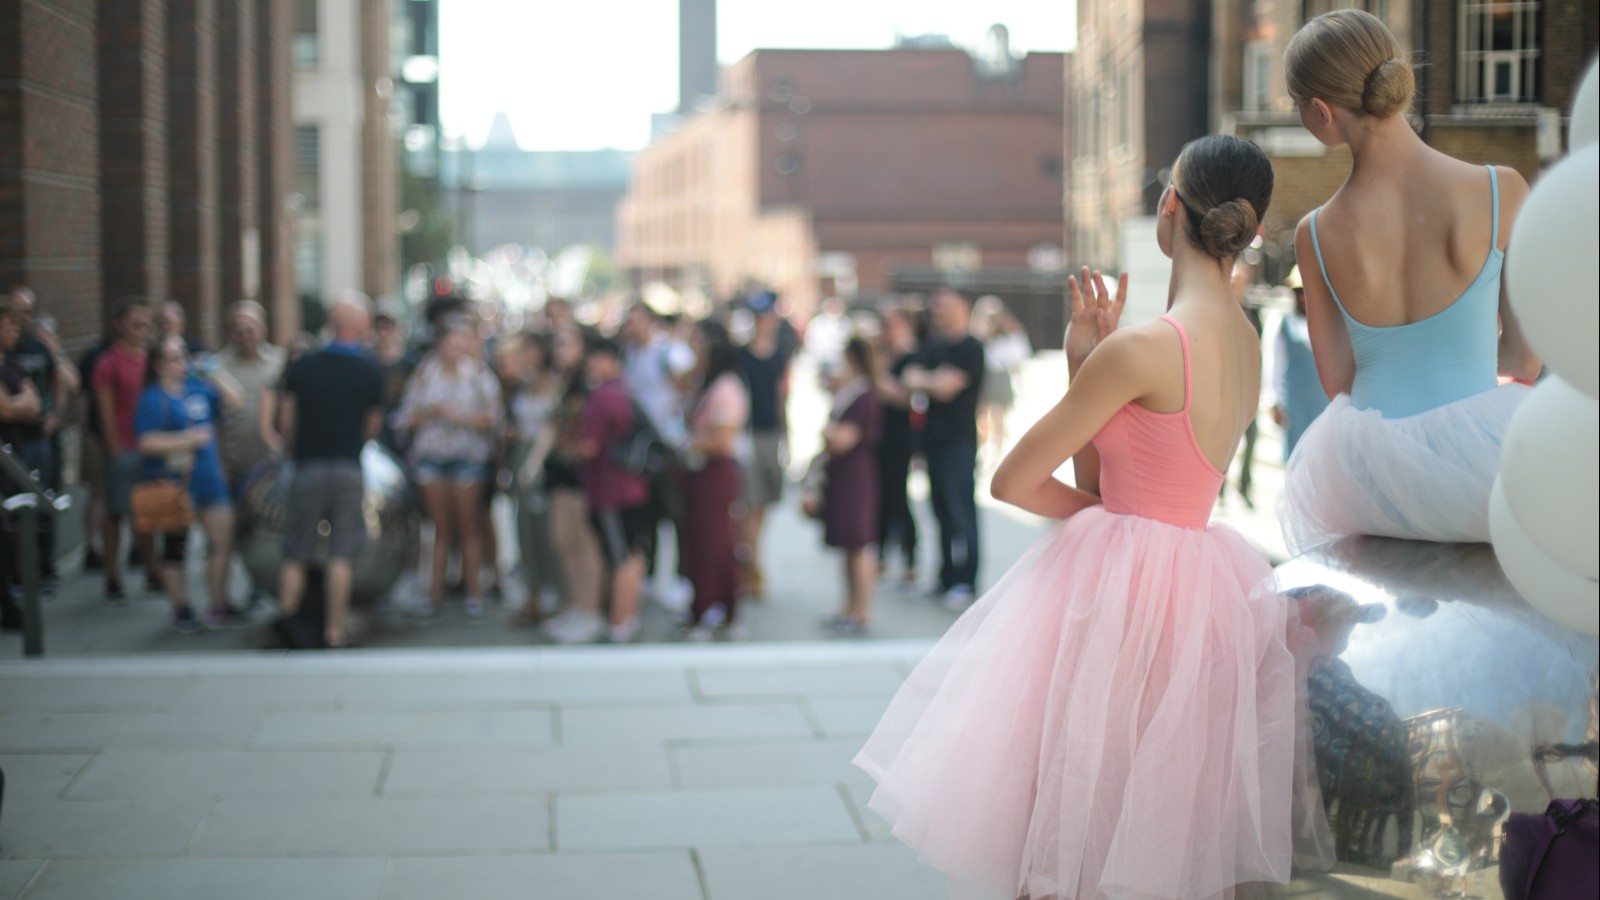 Dare to Dance? BLOCH's Young Artist Search is Here!